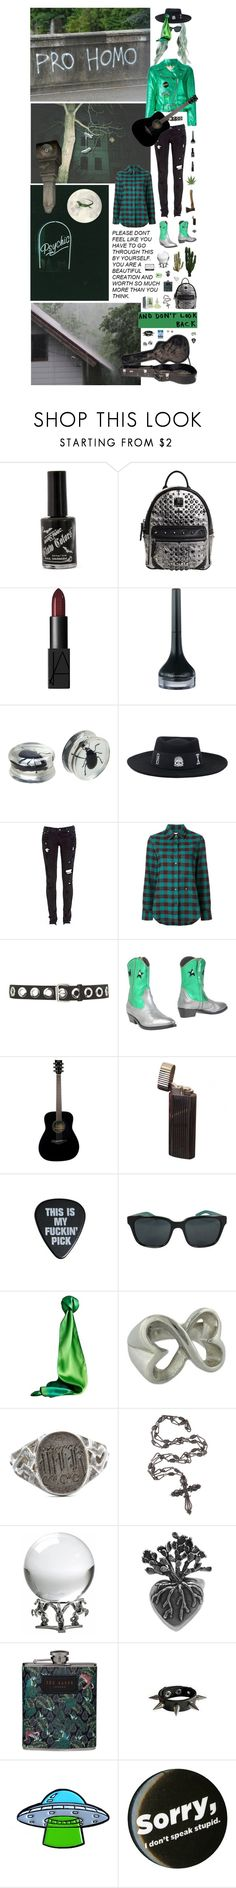 """My music helps to save the nature: cemetery night for all the vegetarian punks is available in your hell."" by nothingisnormal ❤ liked on Polyvore featuring MCM, NARS Cosmetics, TONYMOLY, Hot Topic, Levi's, Golden Goose, Topshop, Yamaha, Burberry and NOVICA"